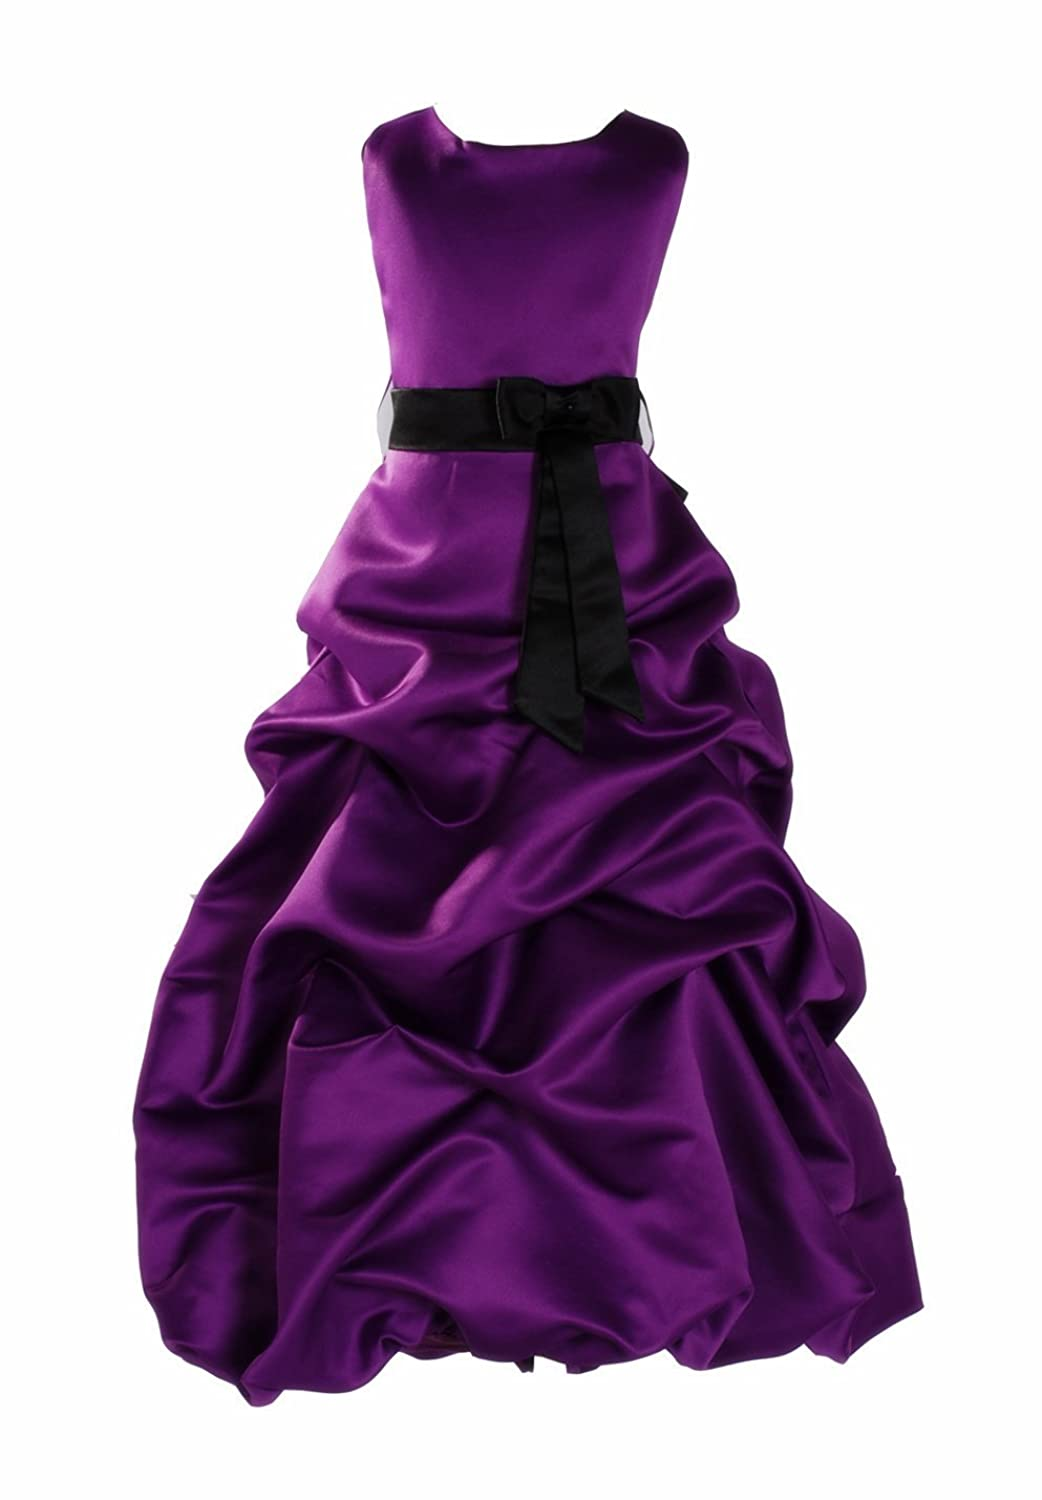 Purple Bridesmaid Dress: Amazon.co.uk: Clothing